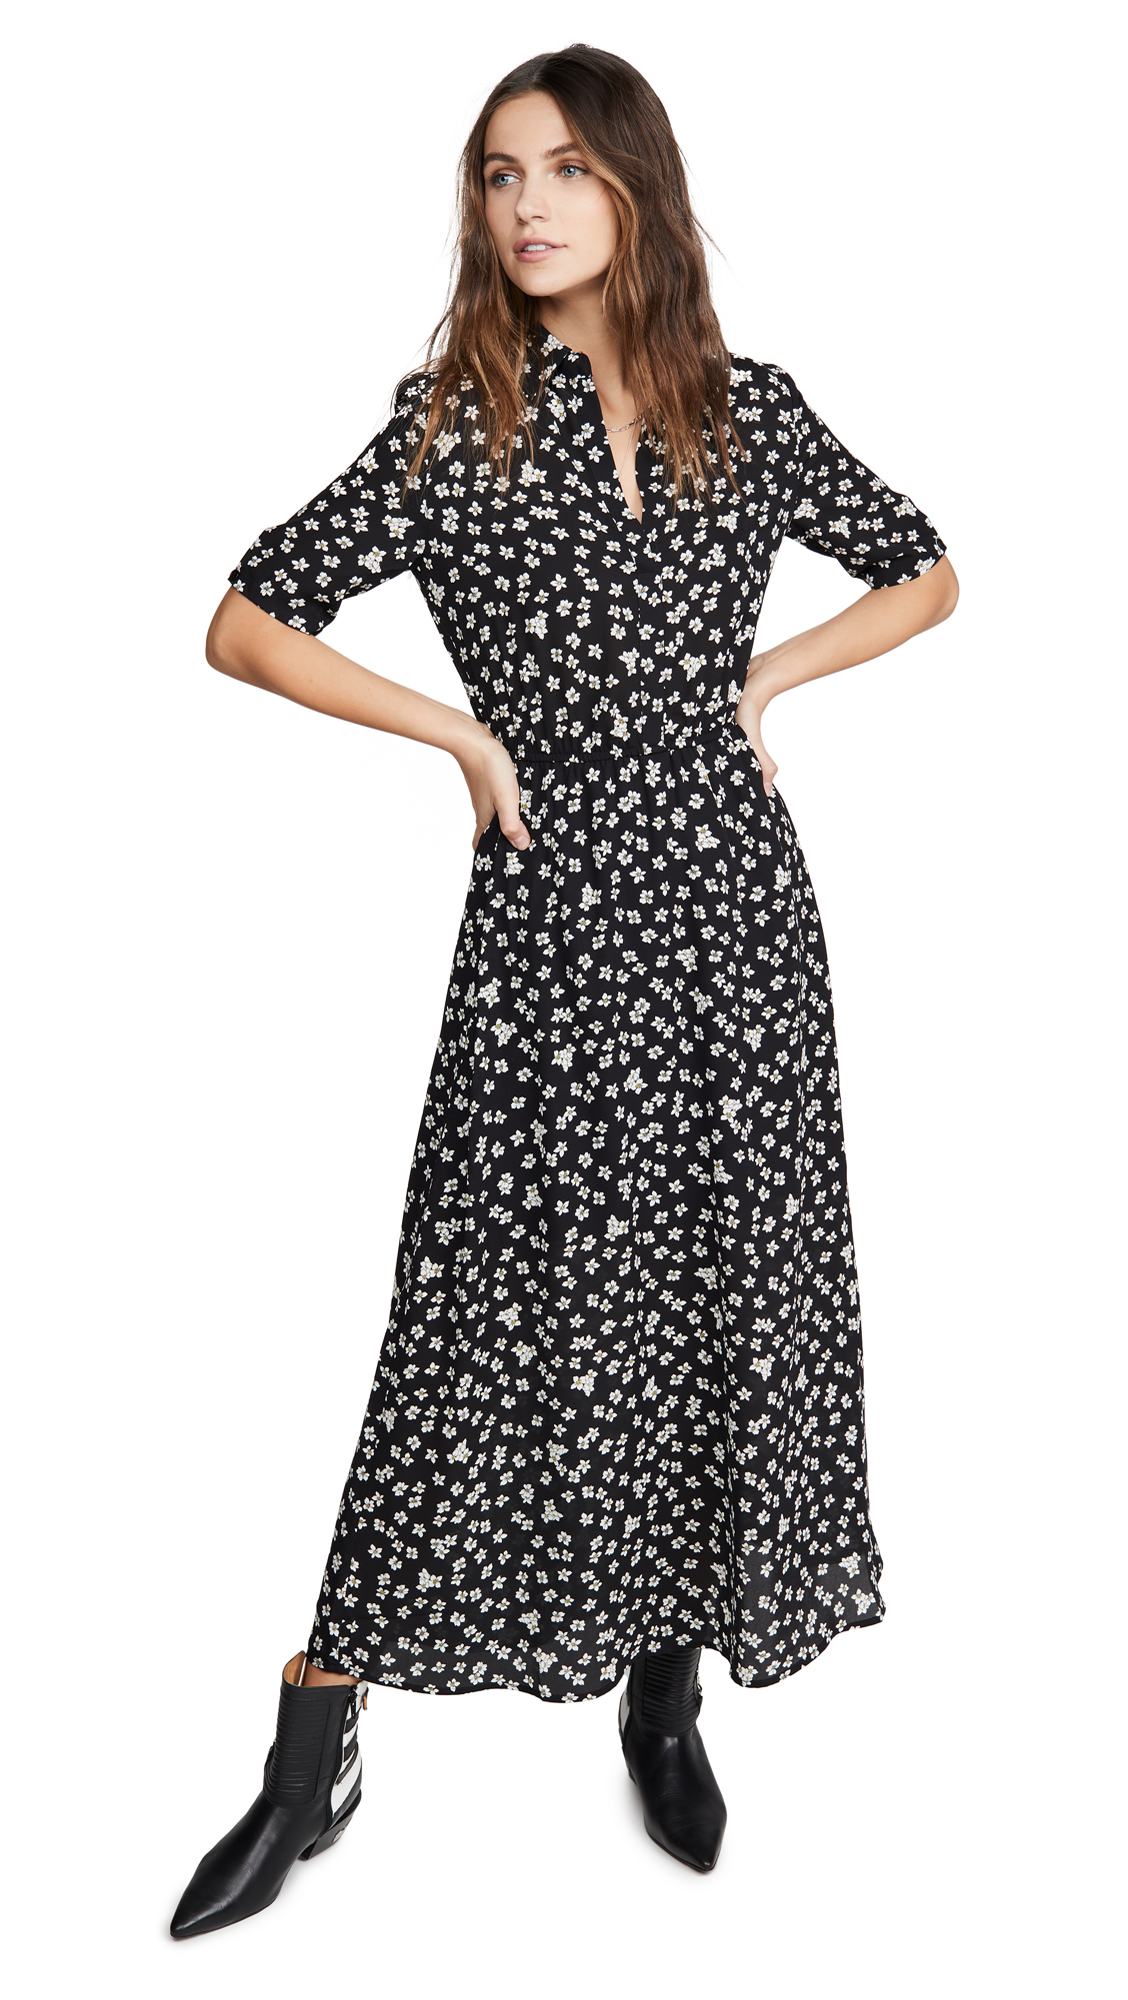 BB Dakota Floral Education Dress - 30% Off Sale